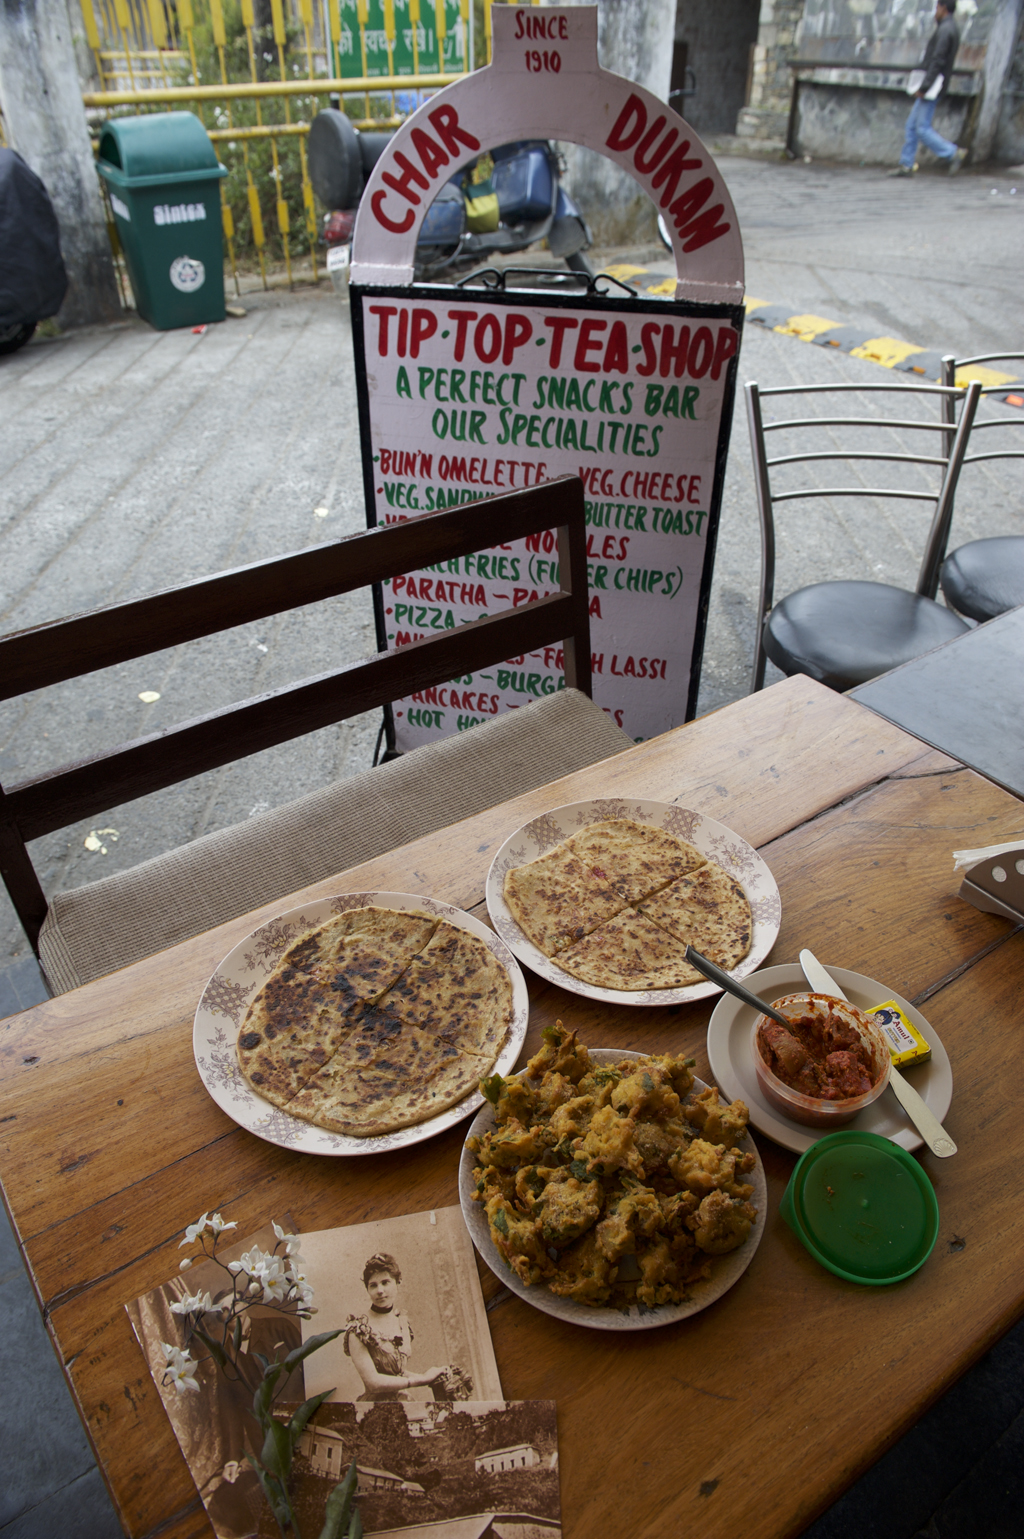 Hill favourites at Tip Top tea shop in Char Dukan